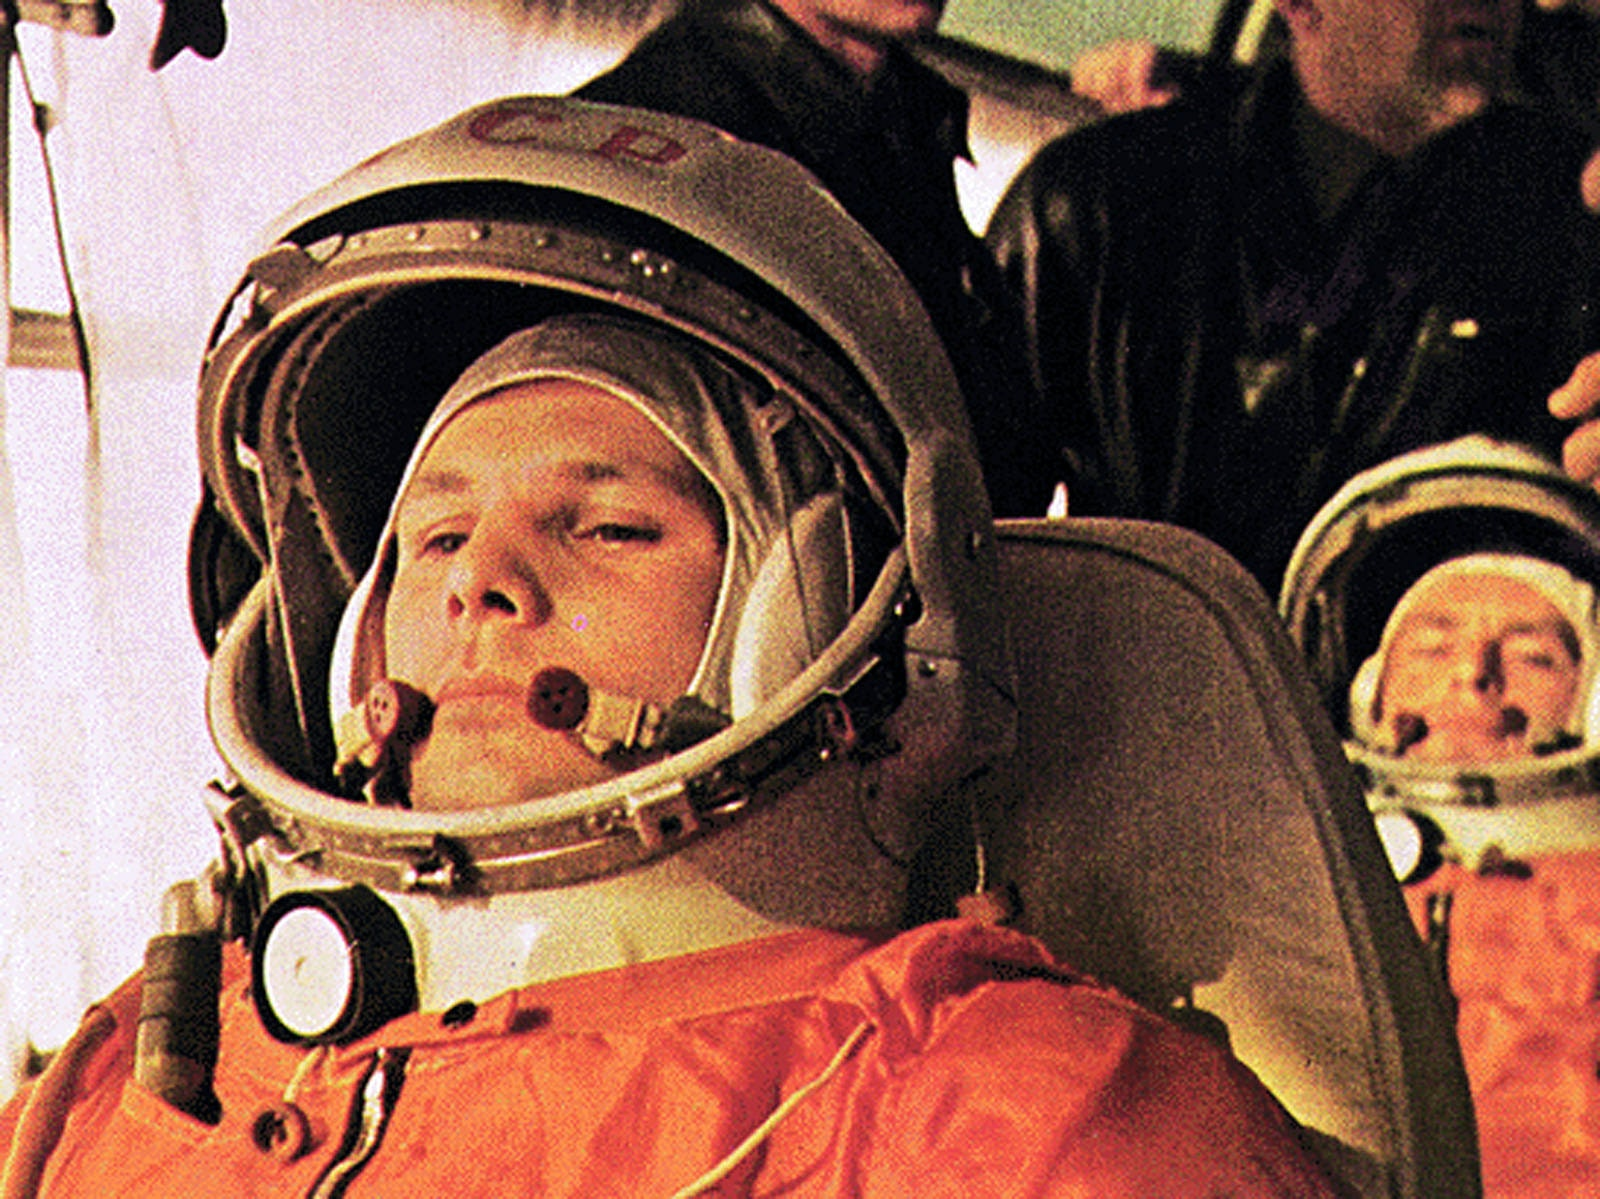 On what did Gagarin fly into space